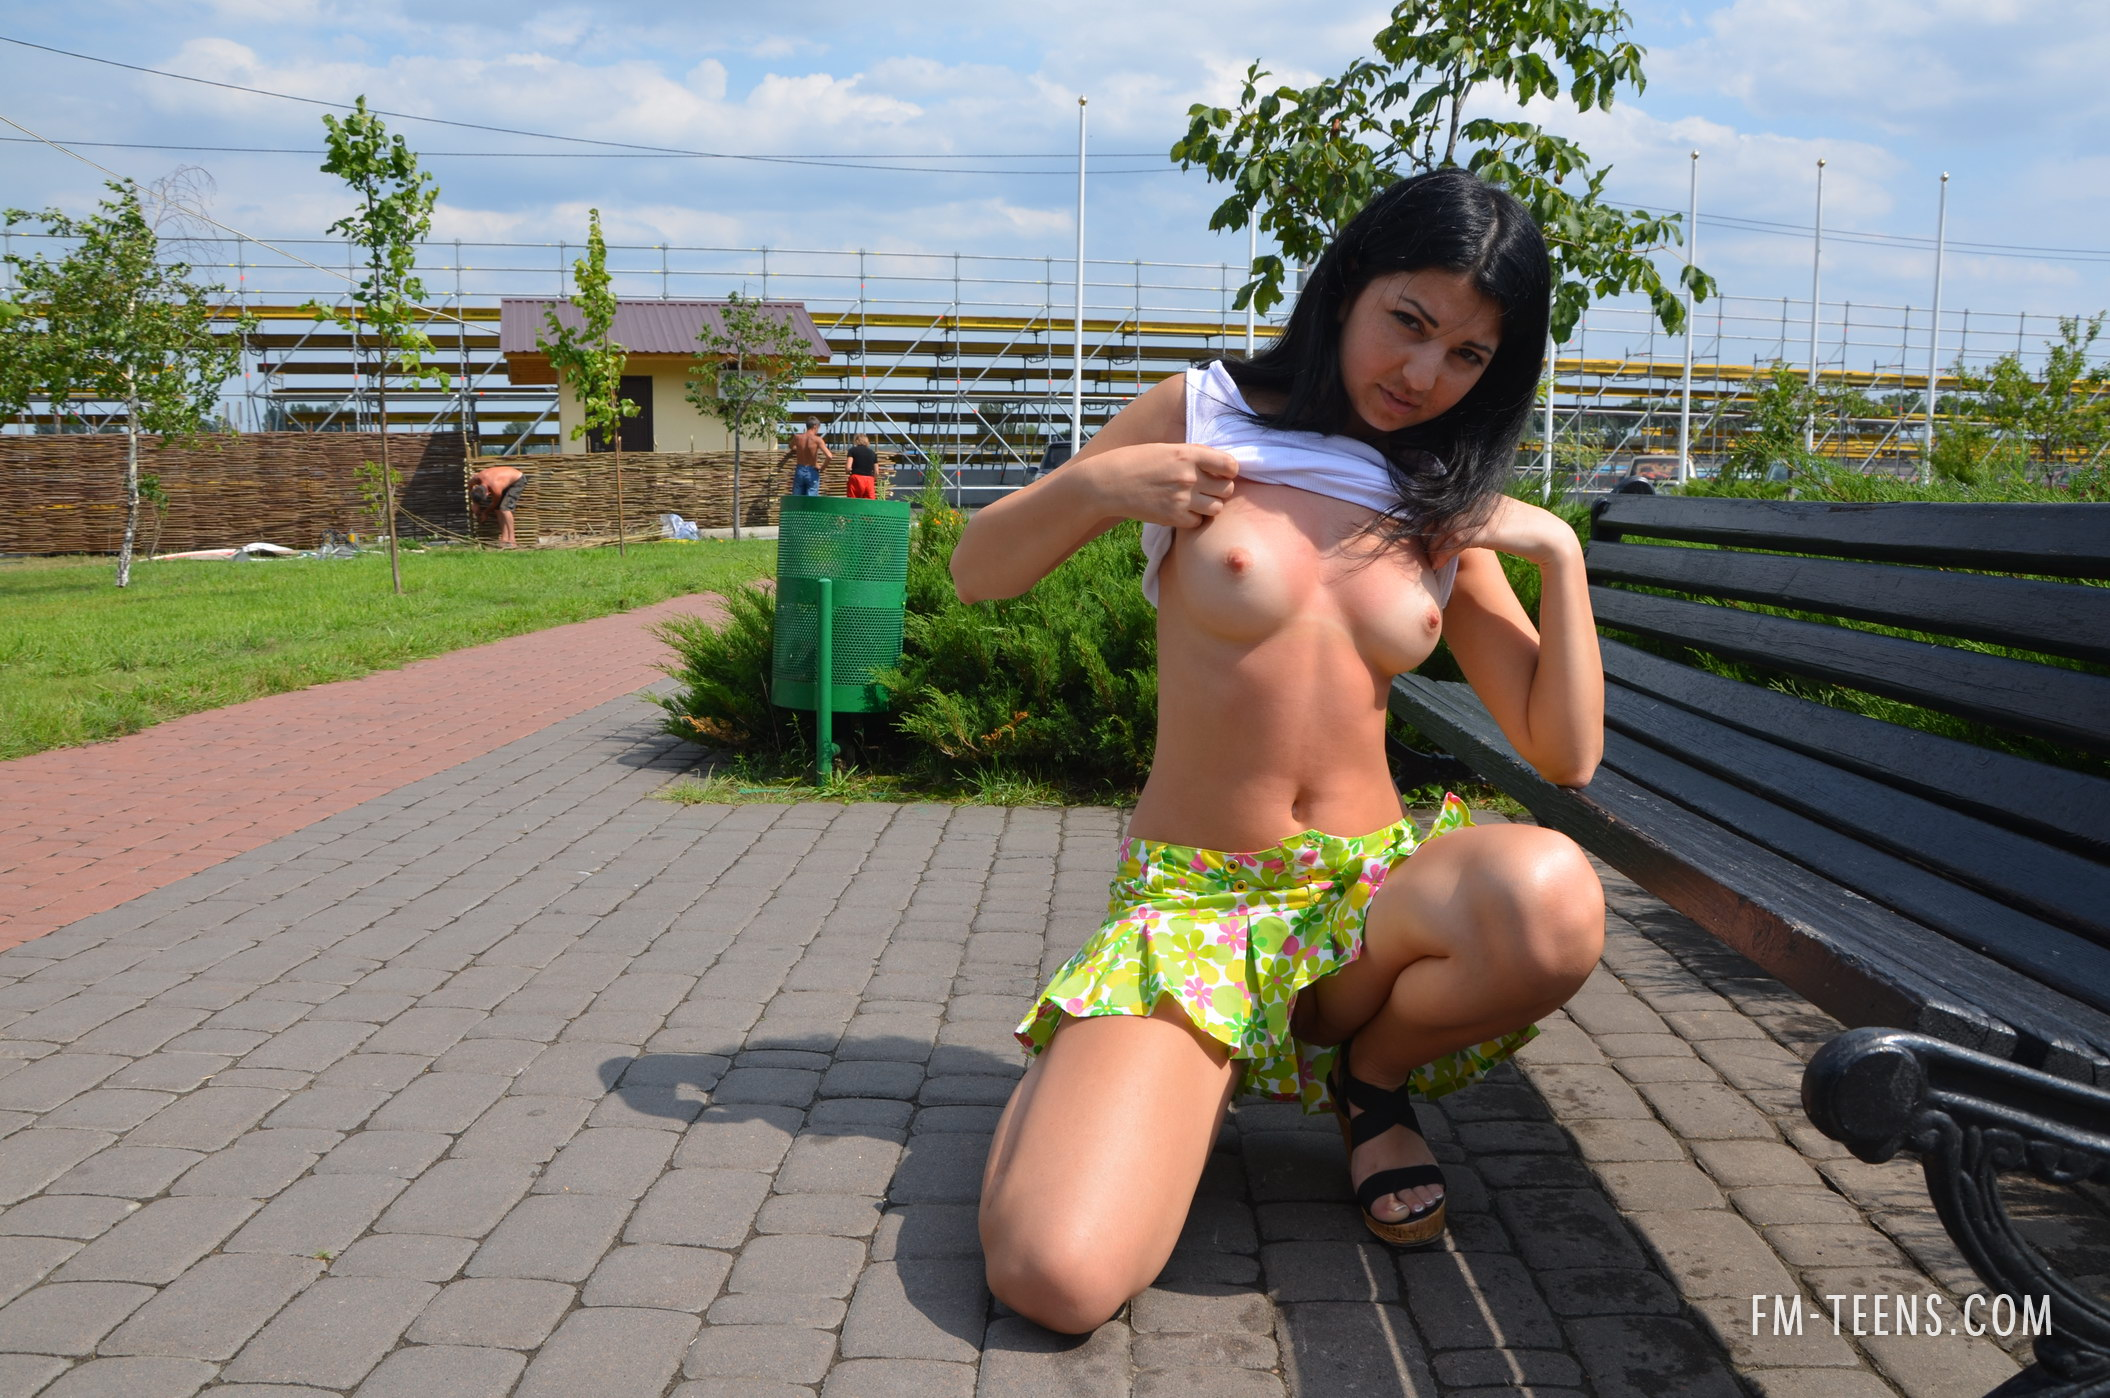 twinkle-young-brunette-nude-public-tits-russia-fm-teens-06